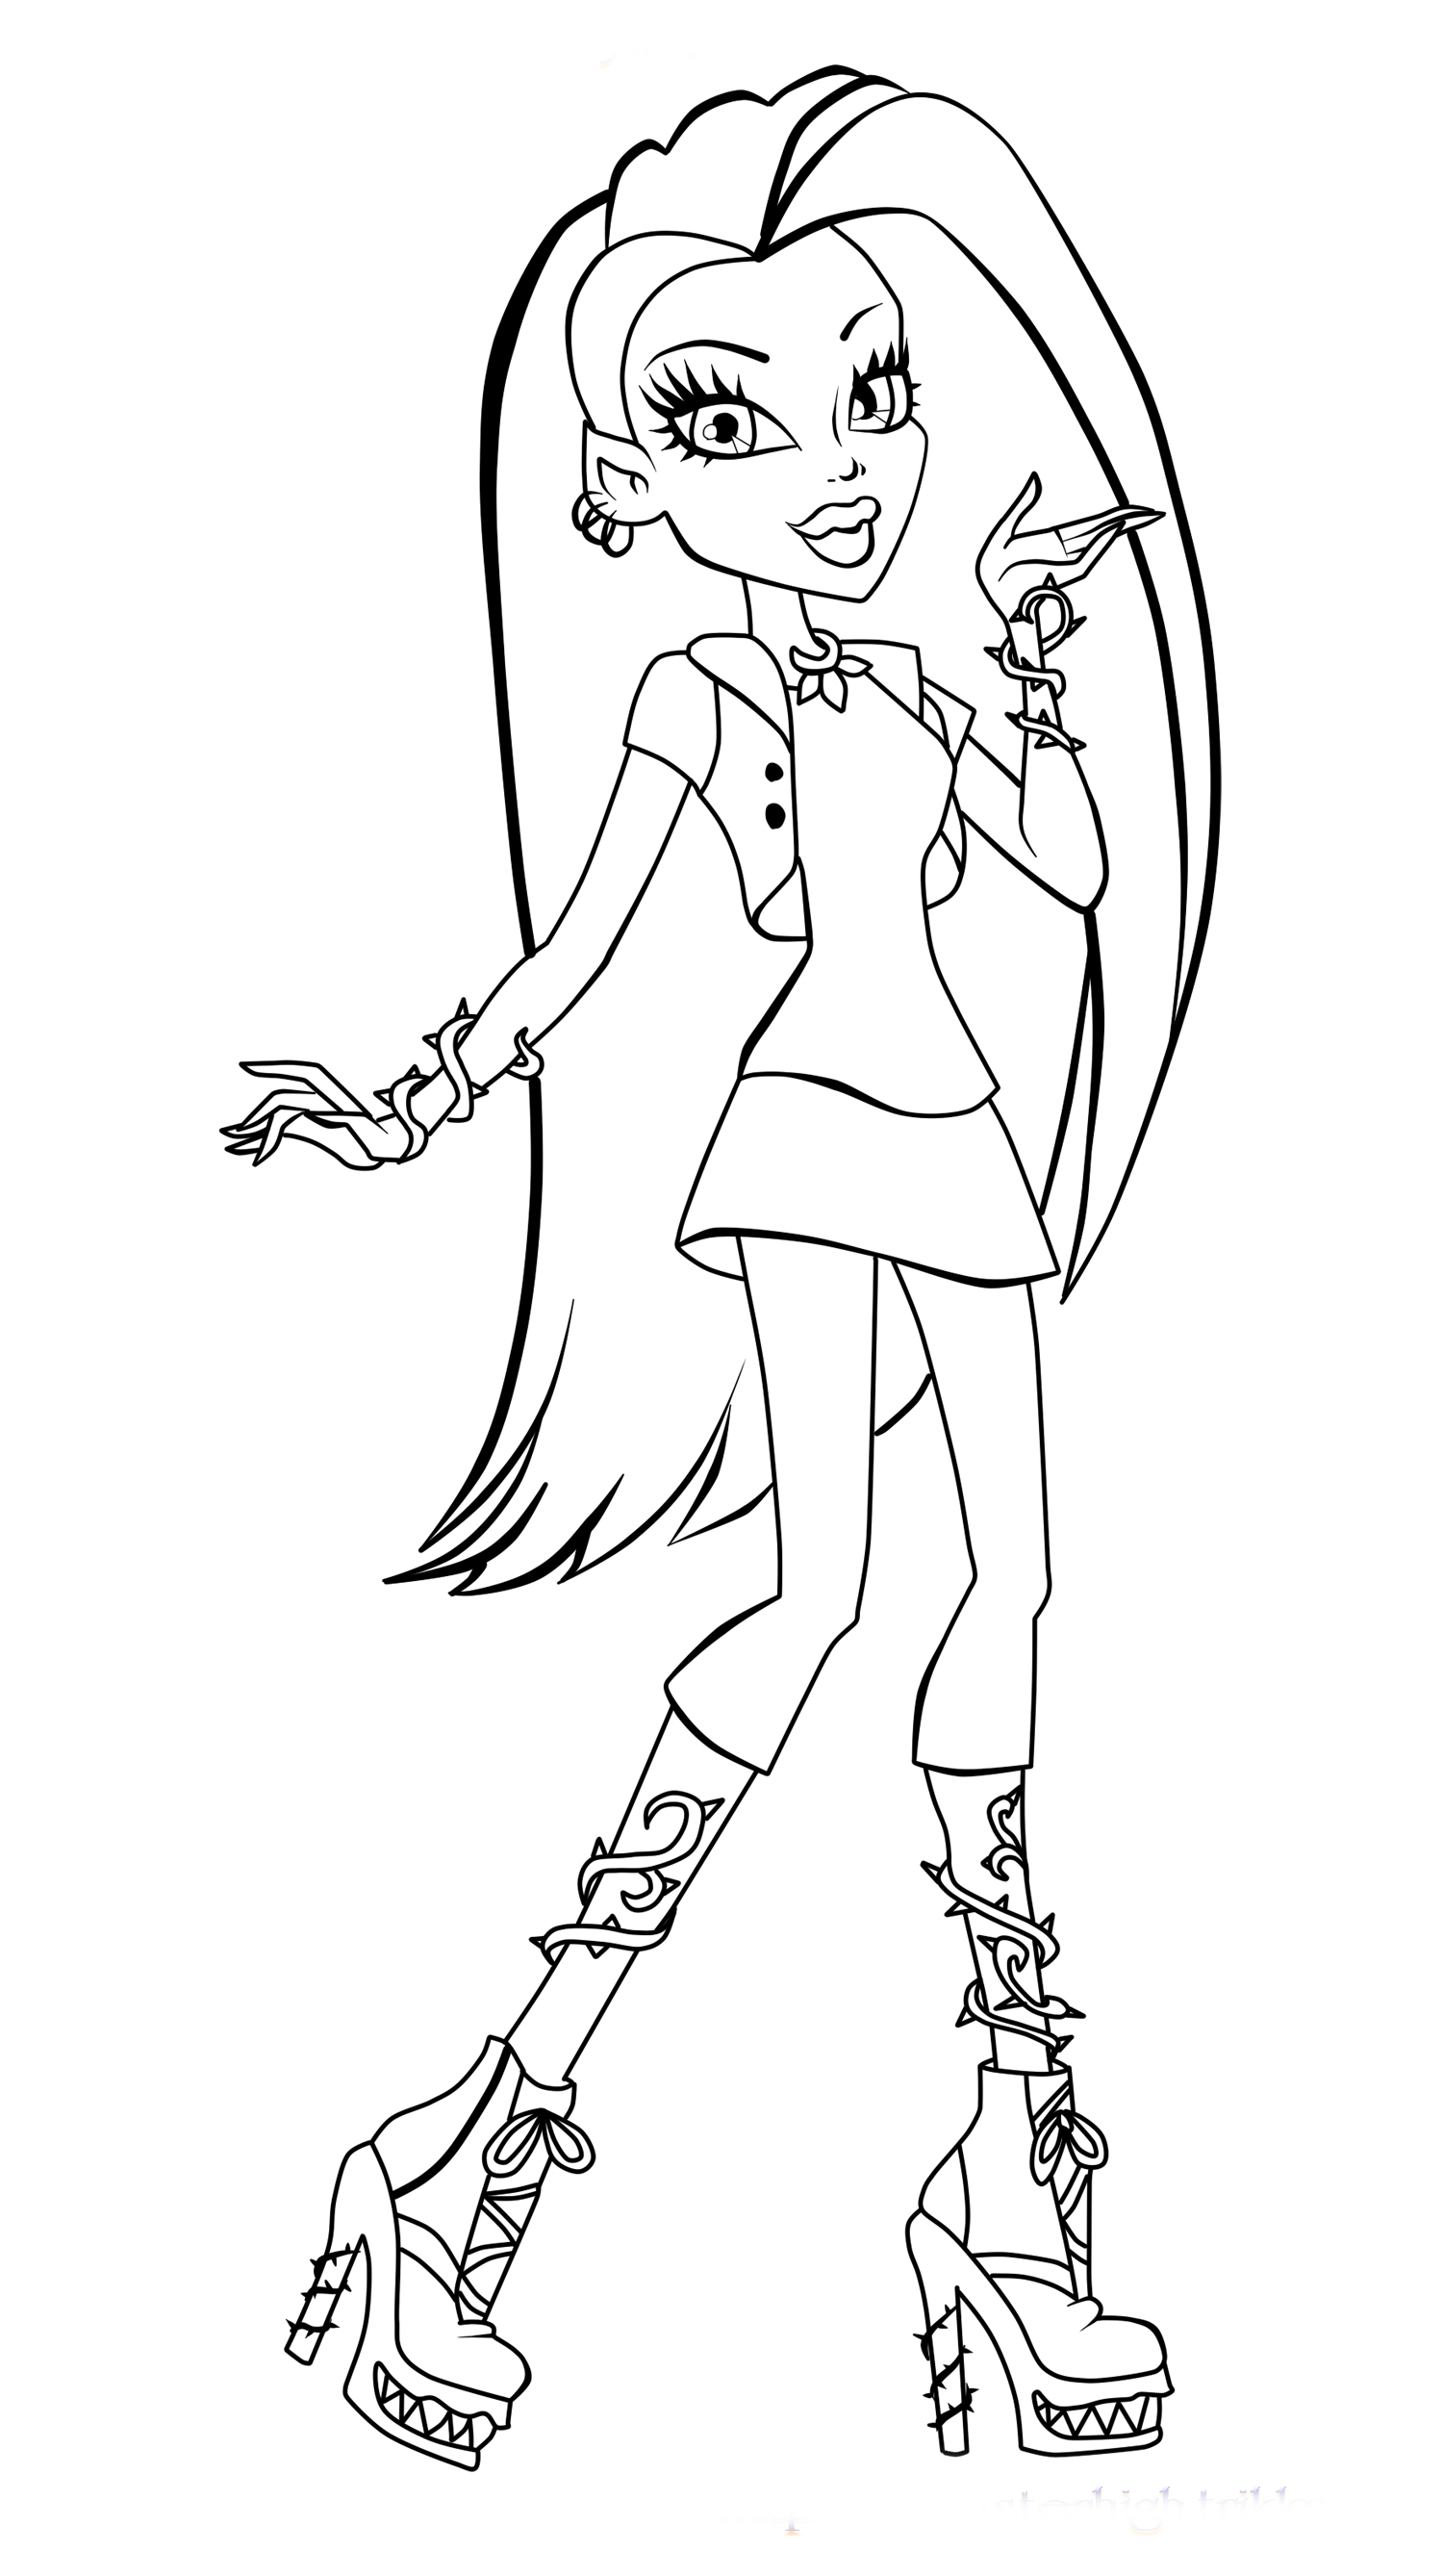 free monster high coloring pages to print - monster high coloring pages 2018 z31 coloring page